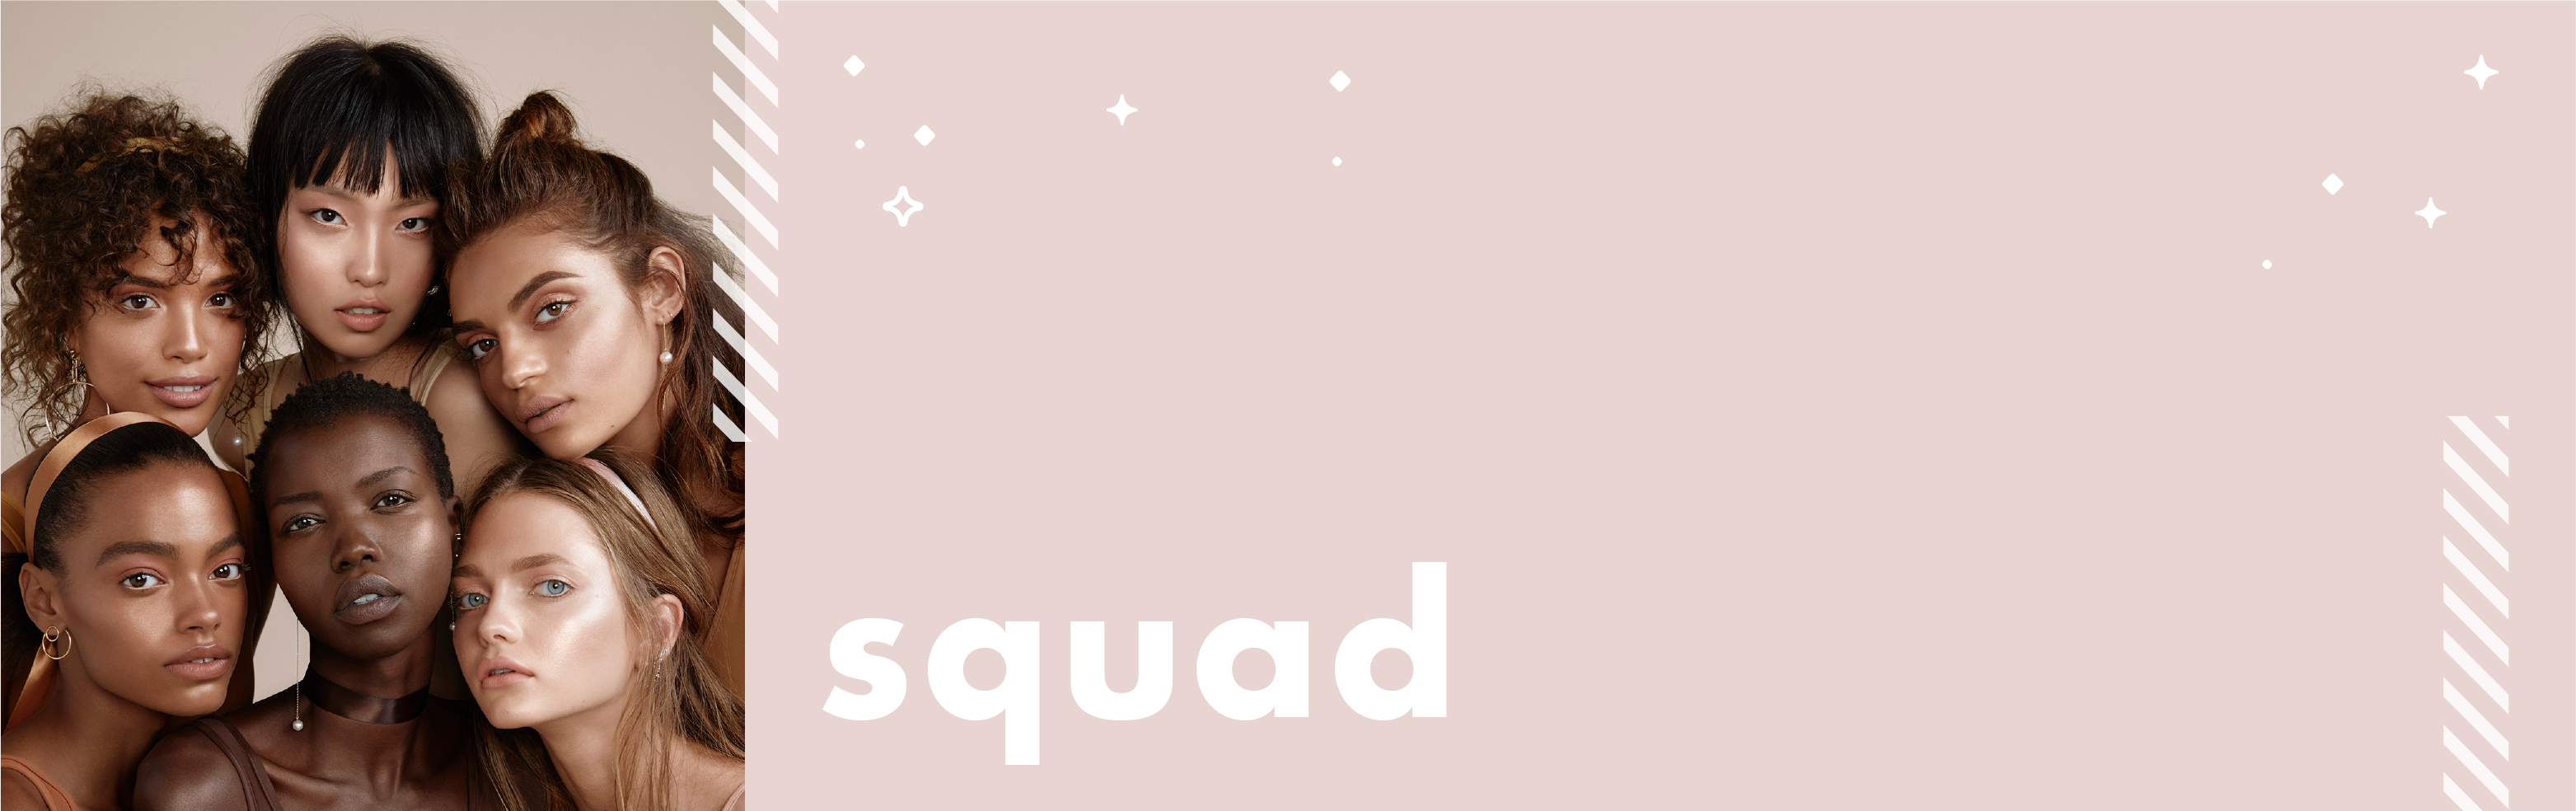 Squad ColourPop Collaboration